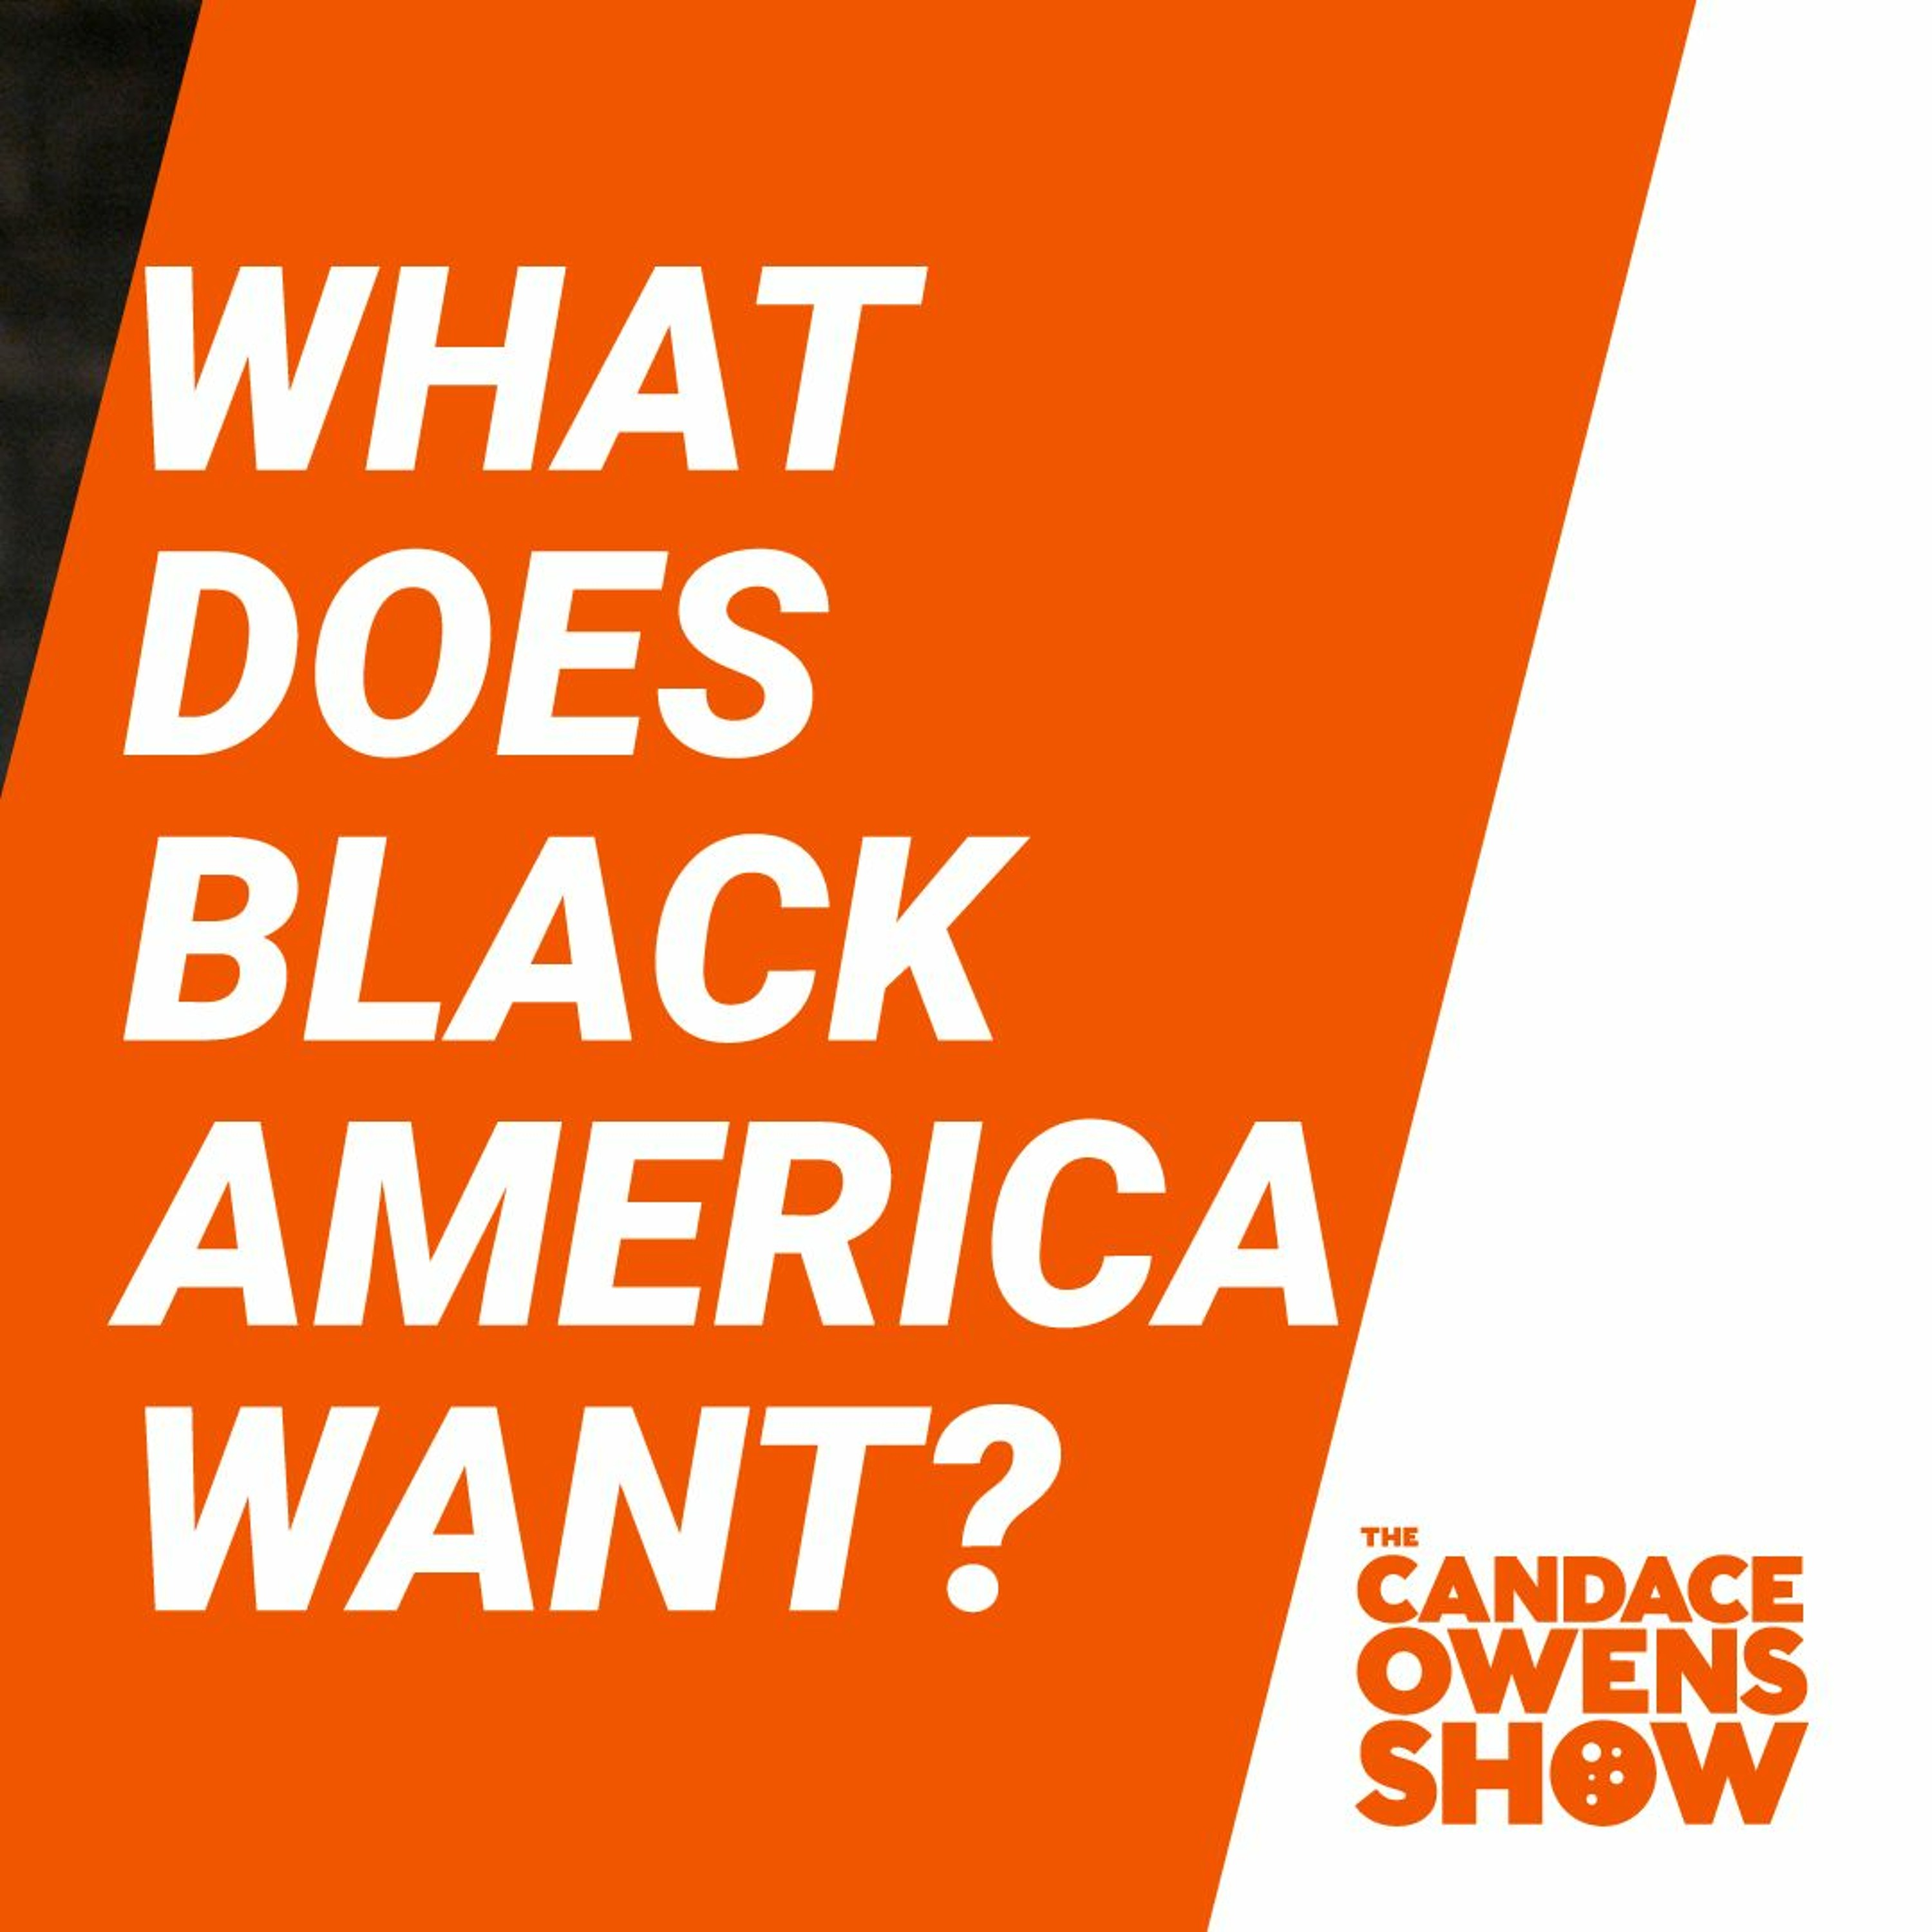 The Candace Owens Show: What Does Black America Want?